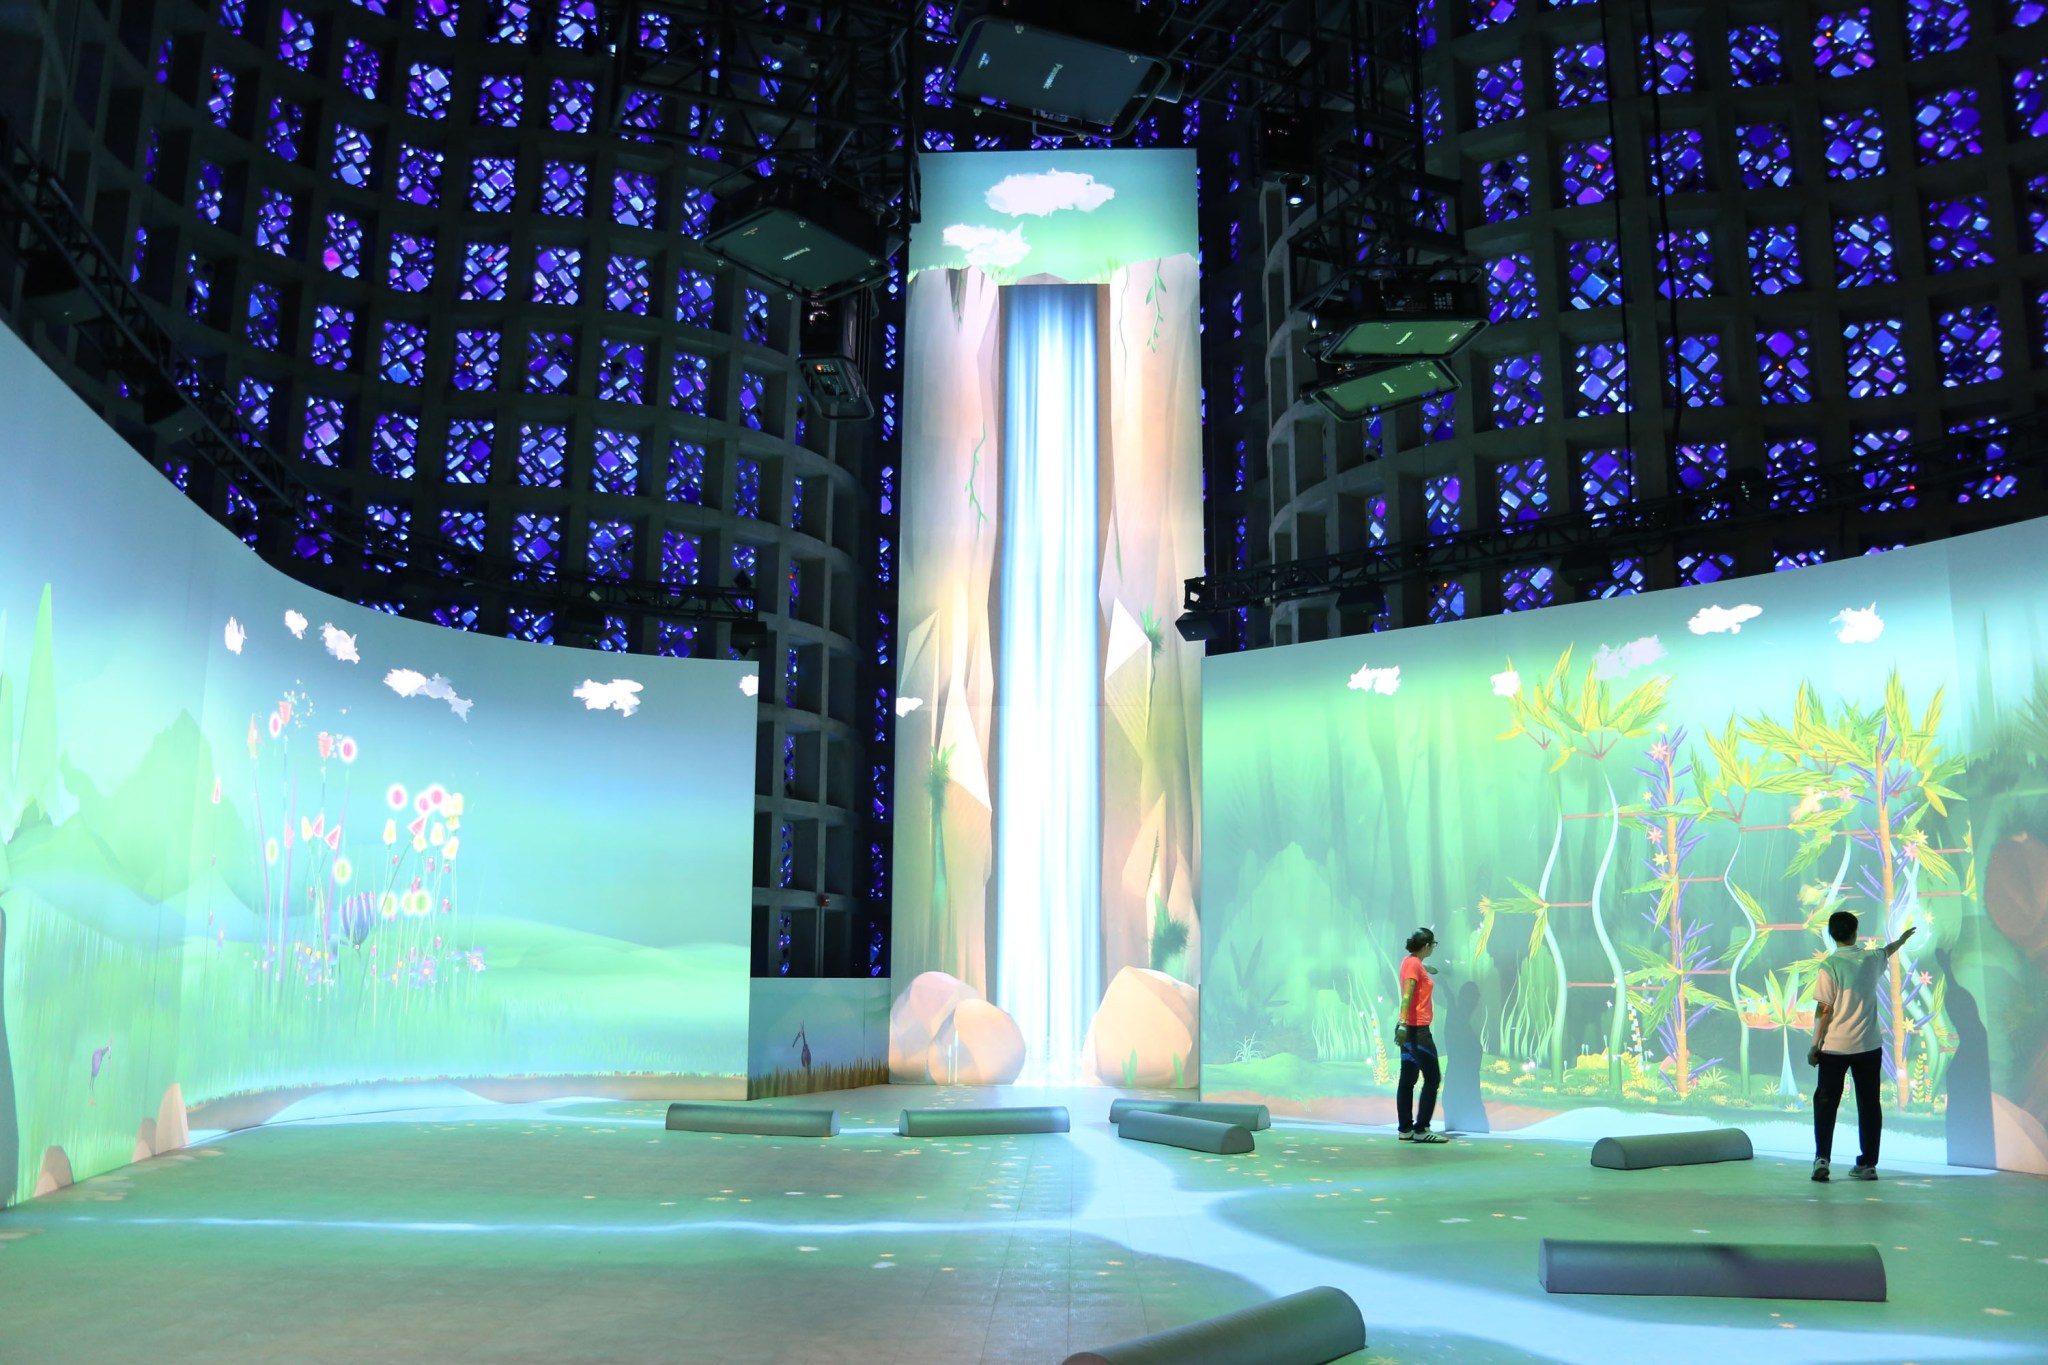 NY_Hall_of_Science_Interactive_Projection_of waterfall and walls